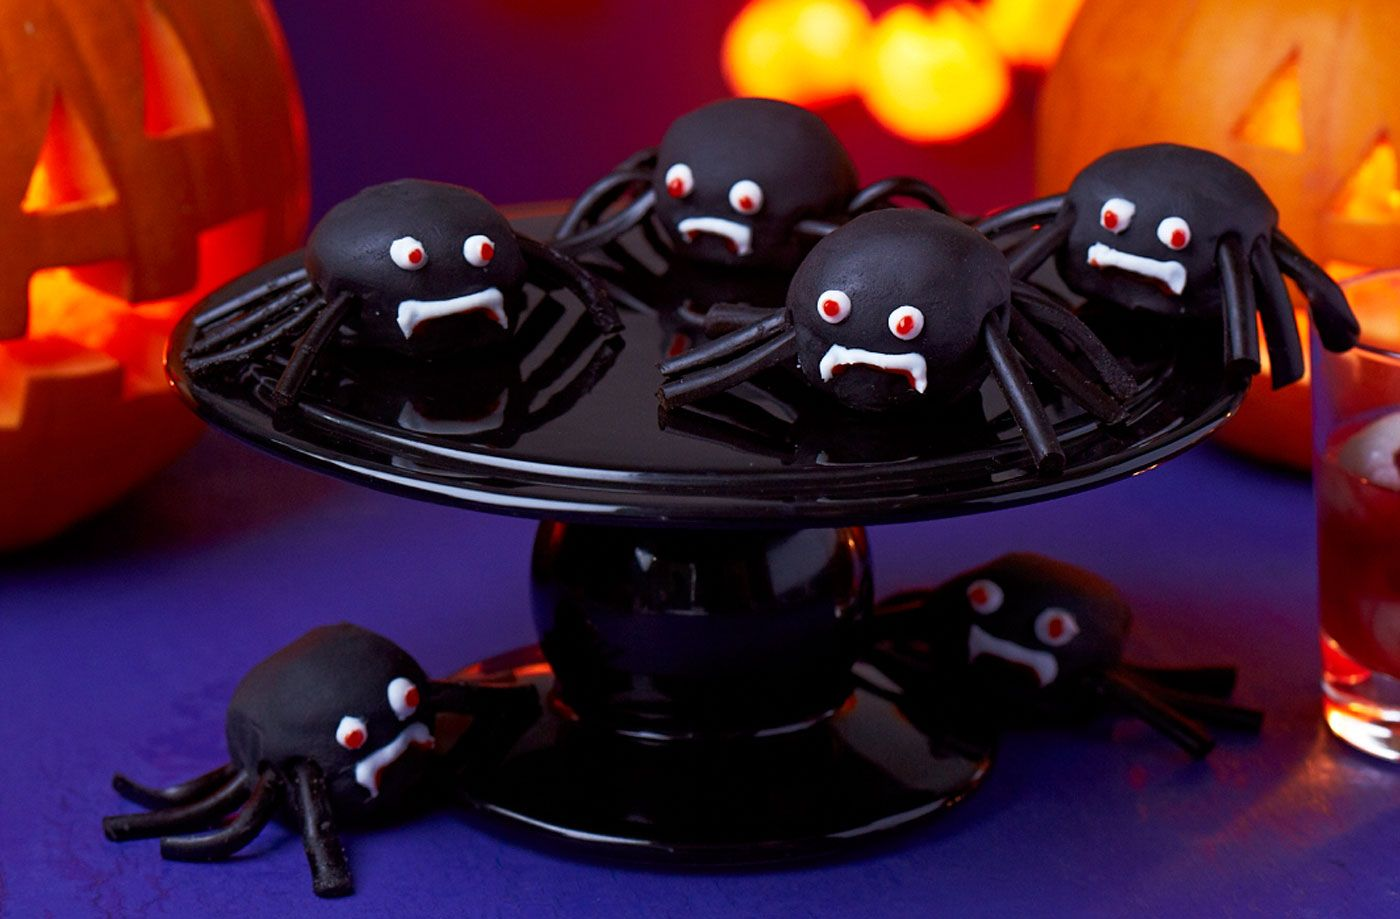 Spider cake pops Recipe Tesco real food, Halloween